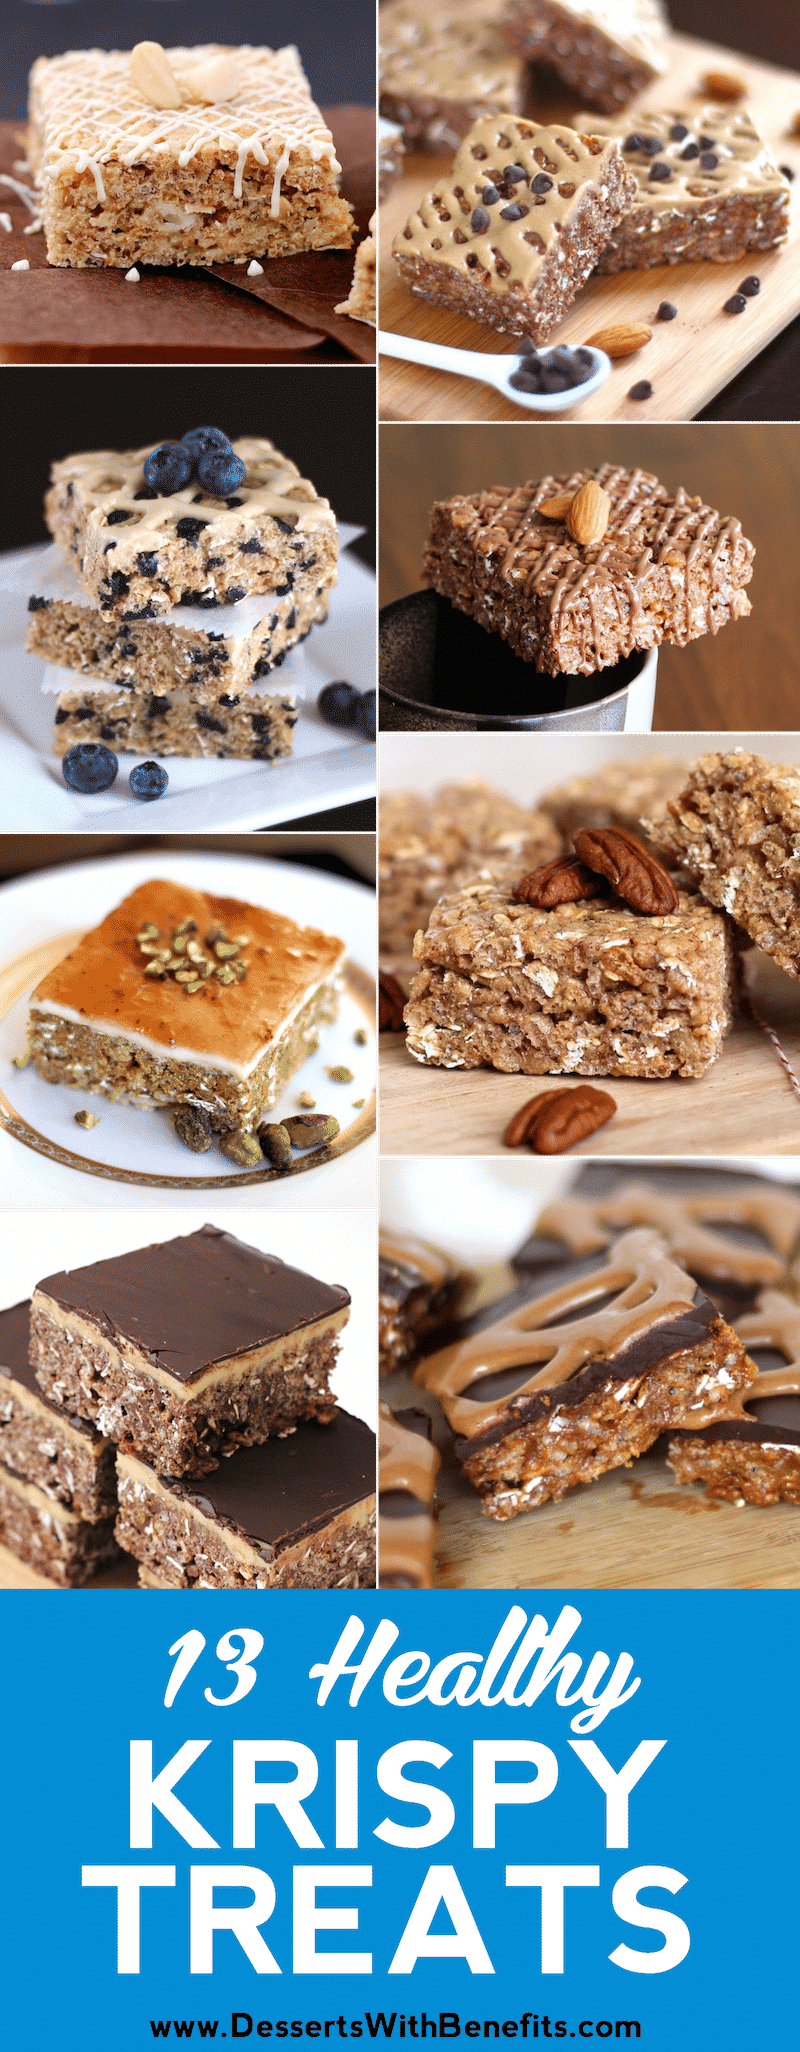 13 Healthy Krispy Treats Recipes (no bake, gluten free, refined sugar free, high protein) - Desserts with Benefits